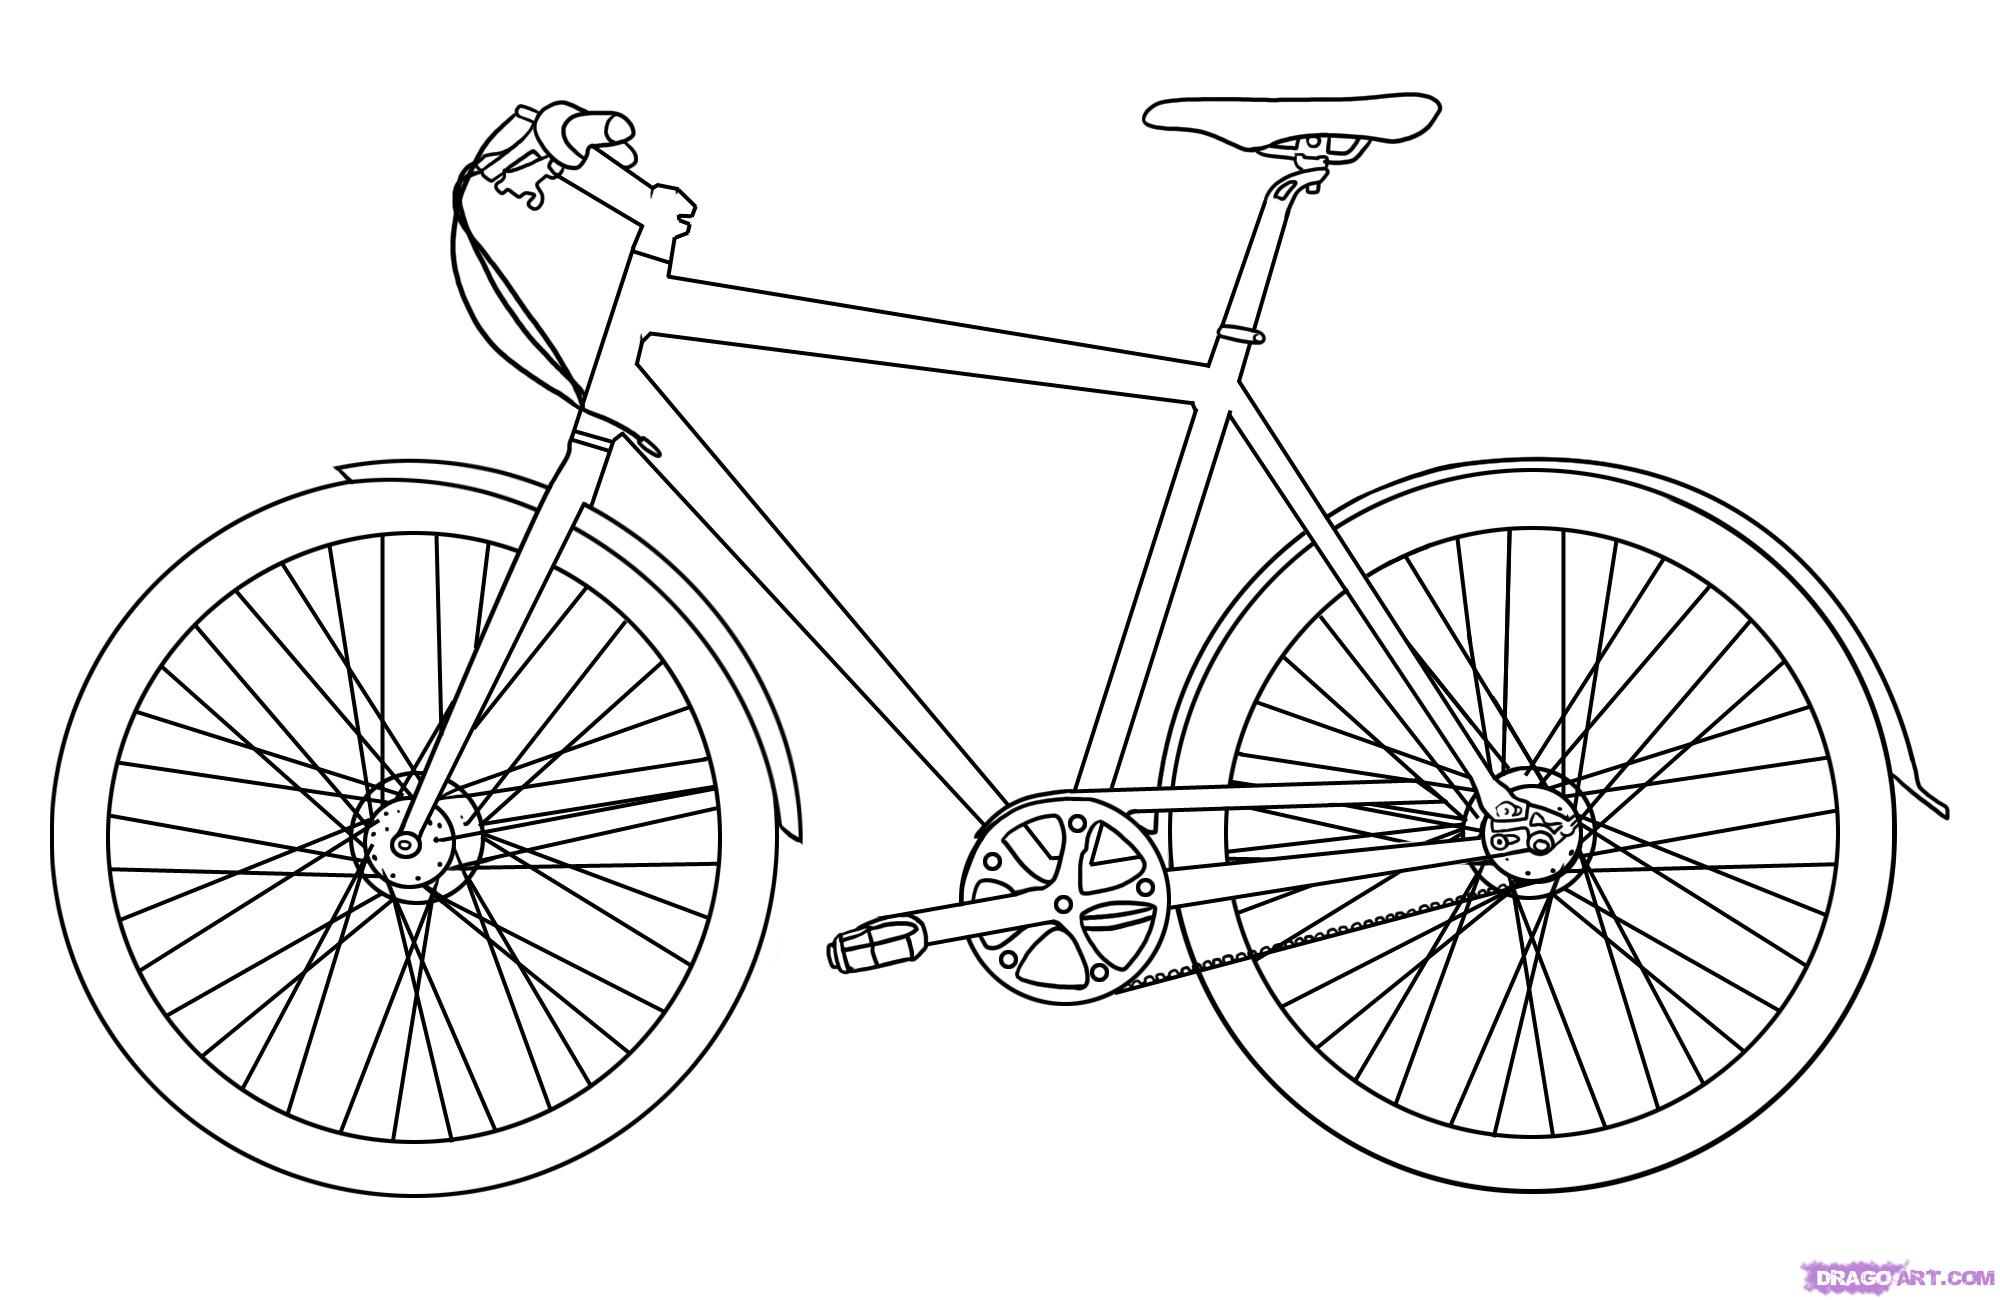 how to draw a bike step by step how to draw a bike step by step step draw to a bike step how by